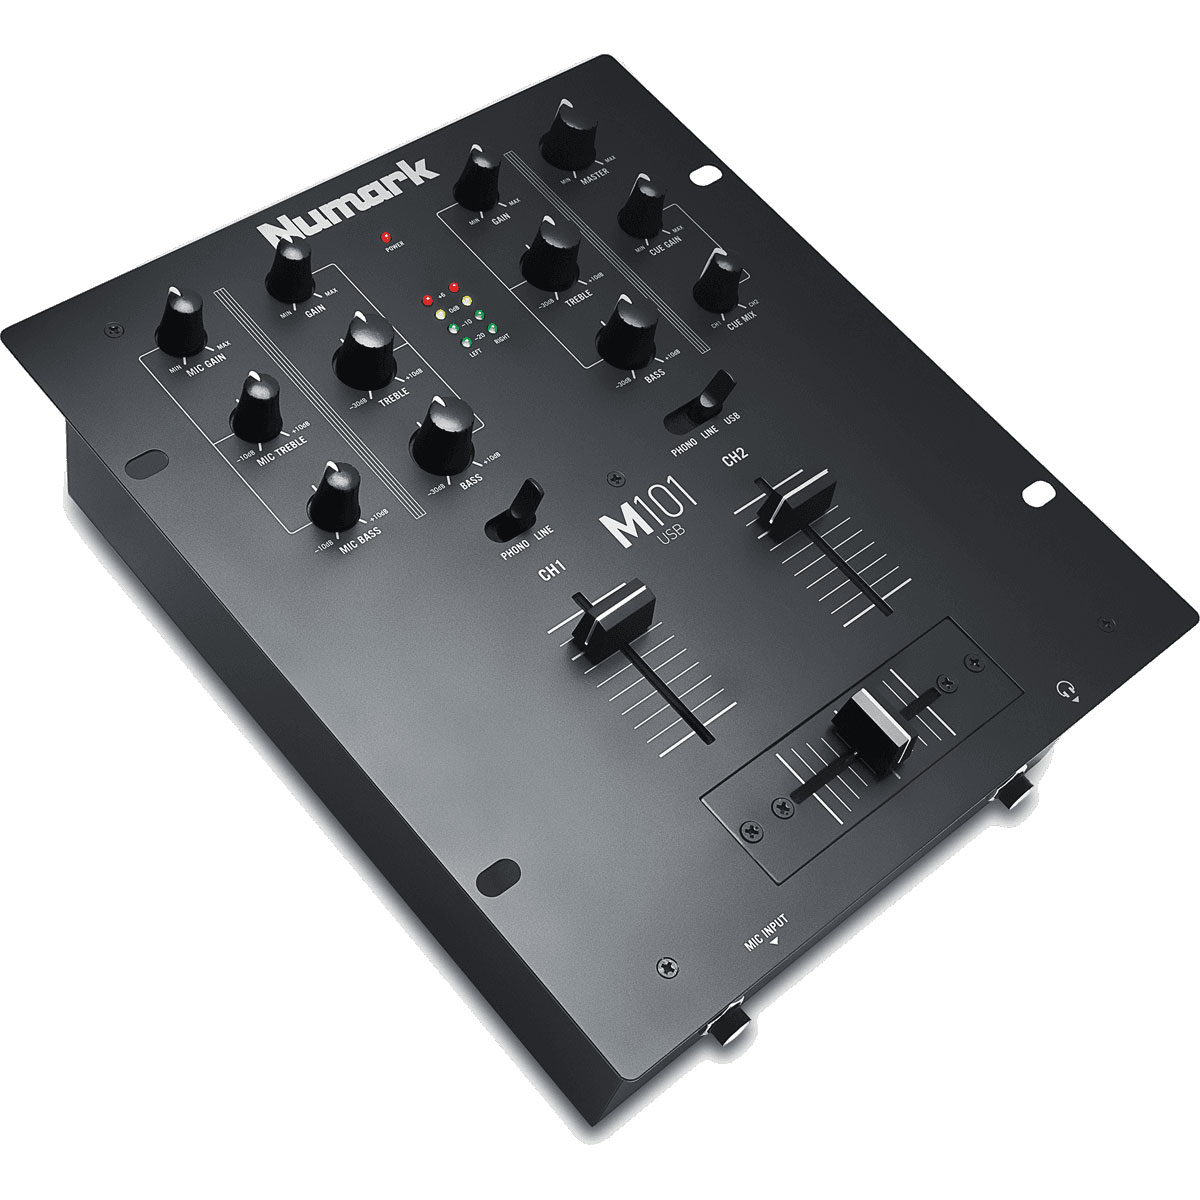 numark m101 usb table de mixage numark sur. Black Bedroom Furniture Sets. Home Design Ideas